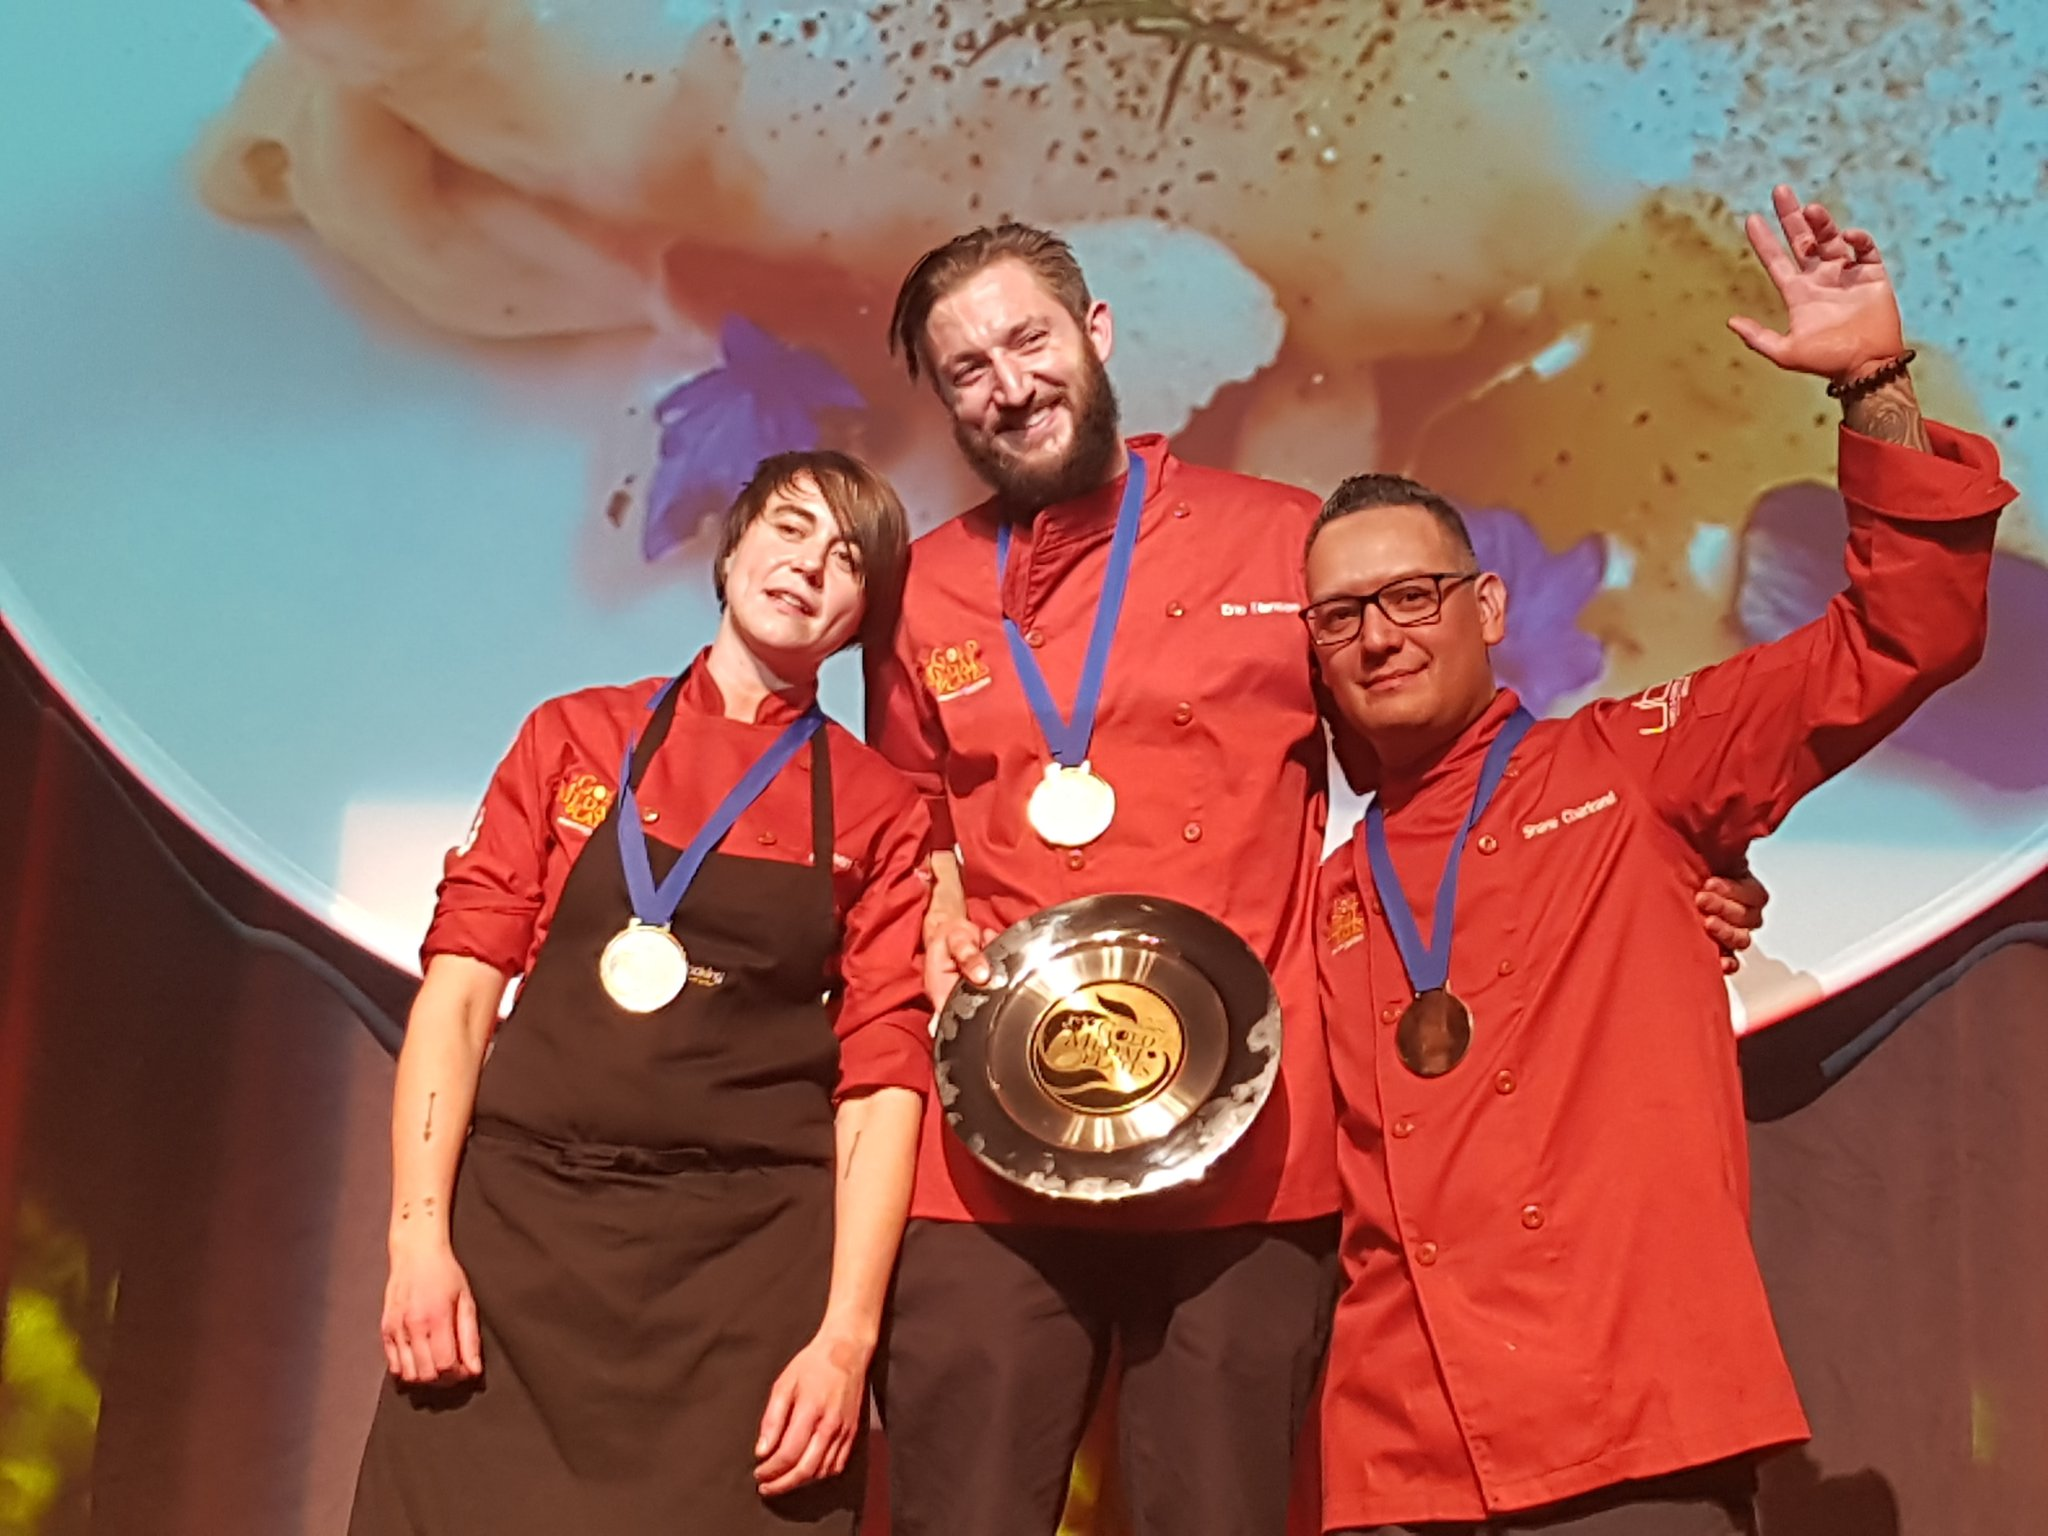 Podium finishers at #gmpedmonton  GOLD to @ChefEricHanson, silver to @DoreenPrei , & bronze to @chefchartrand 🎉Congratulations!🎉 https://t.co/mqDEgrKeJT